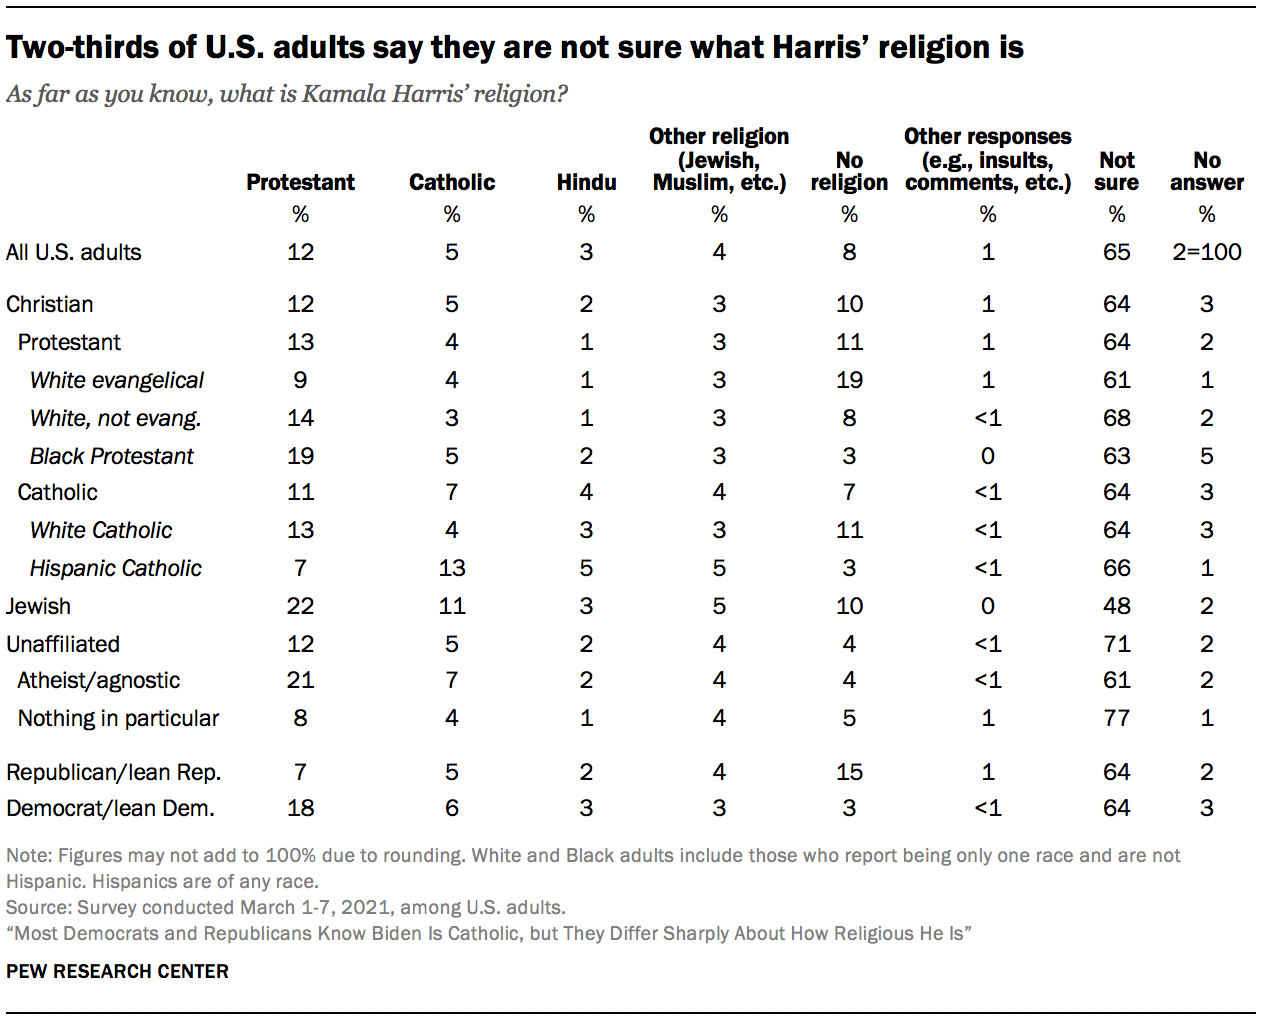 Two-thirds of U.S. adults say they are not sure what Harris' religion is